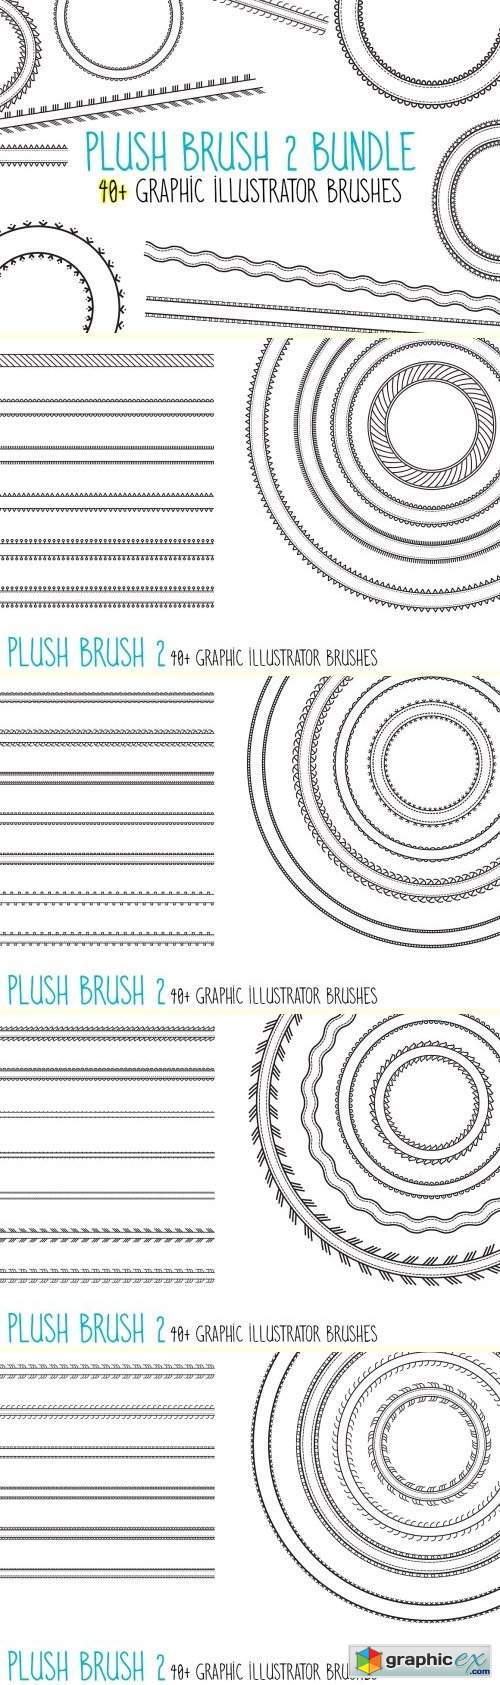 Plush Brush 2: 40 Graphic AI Brushes